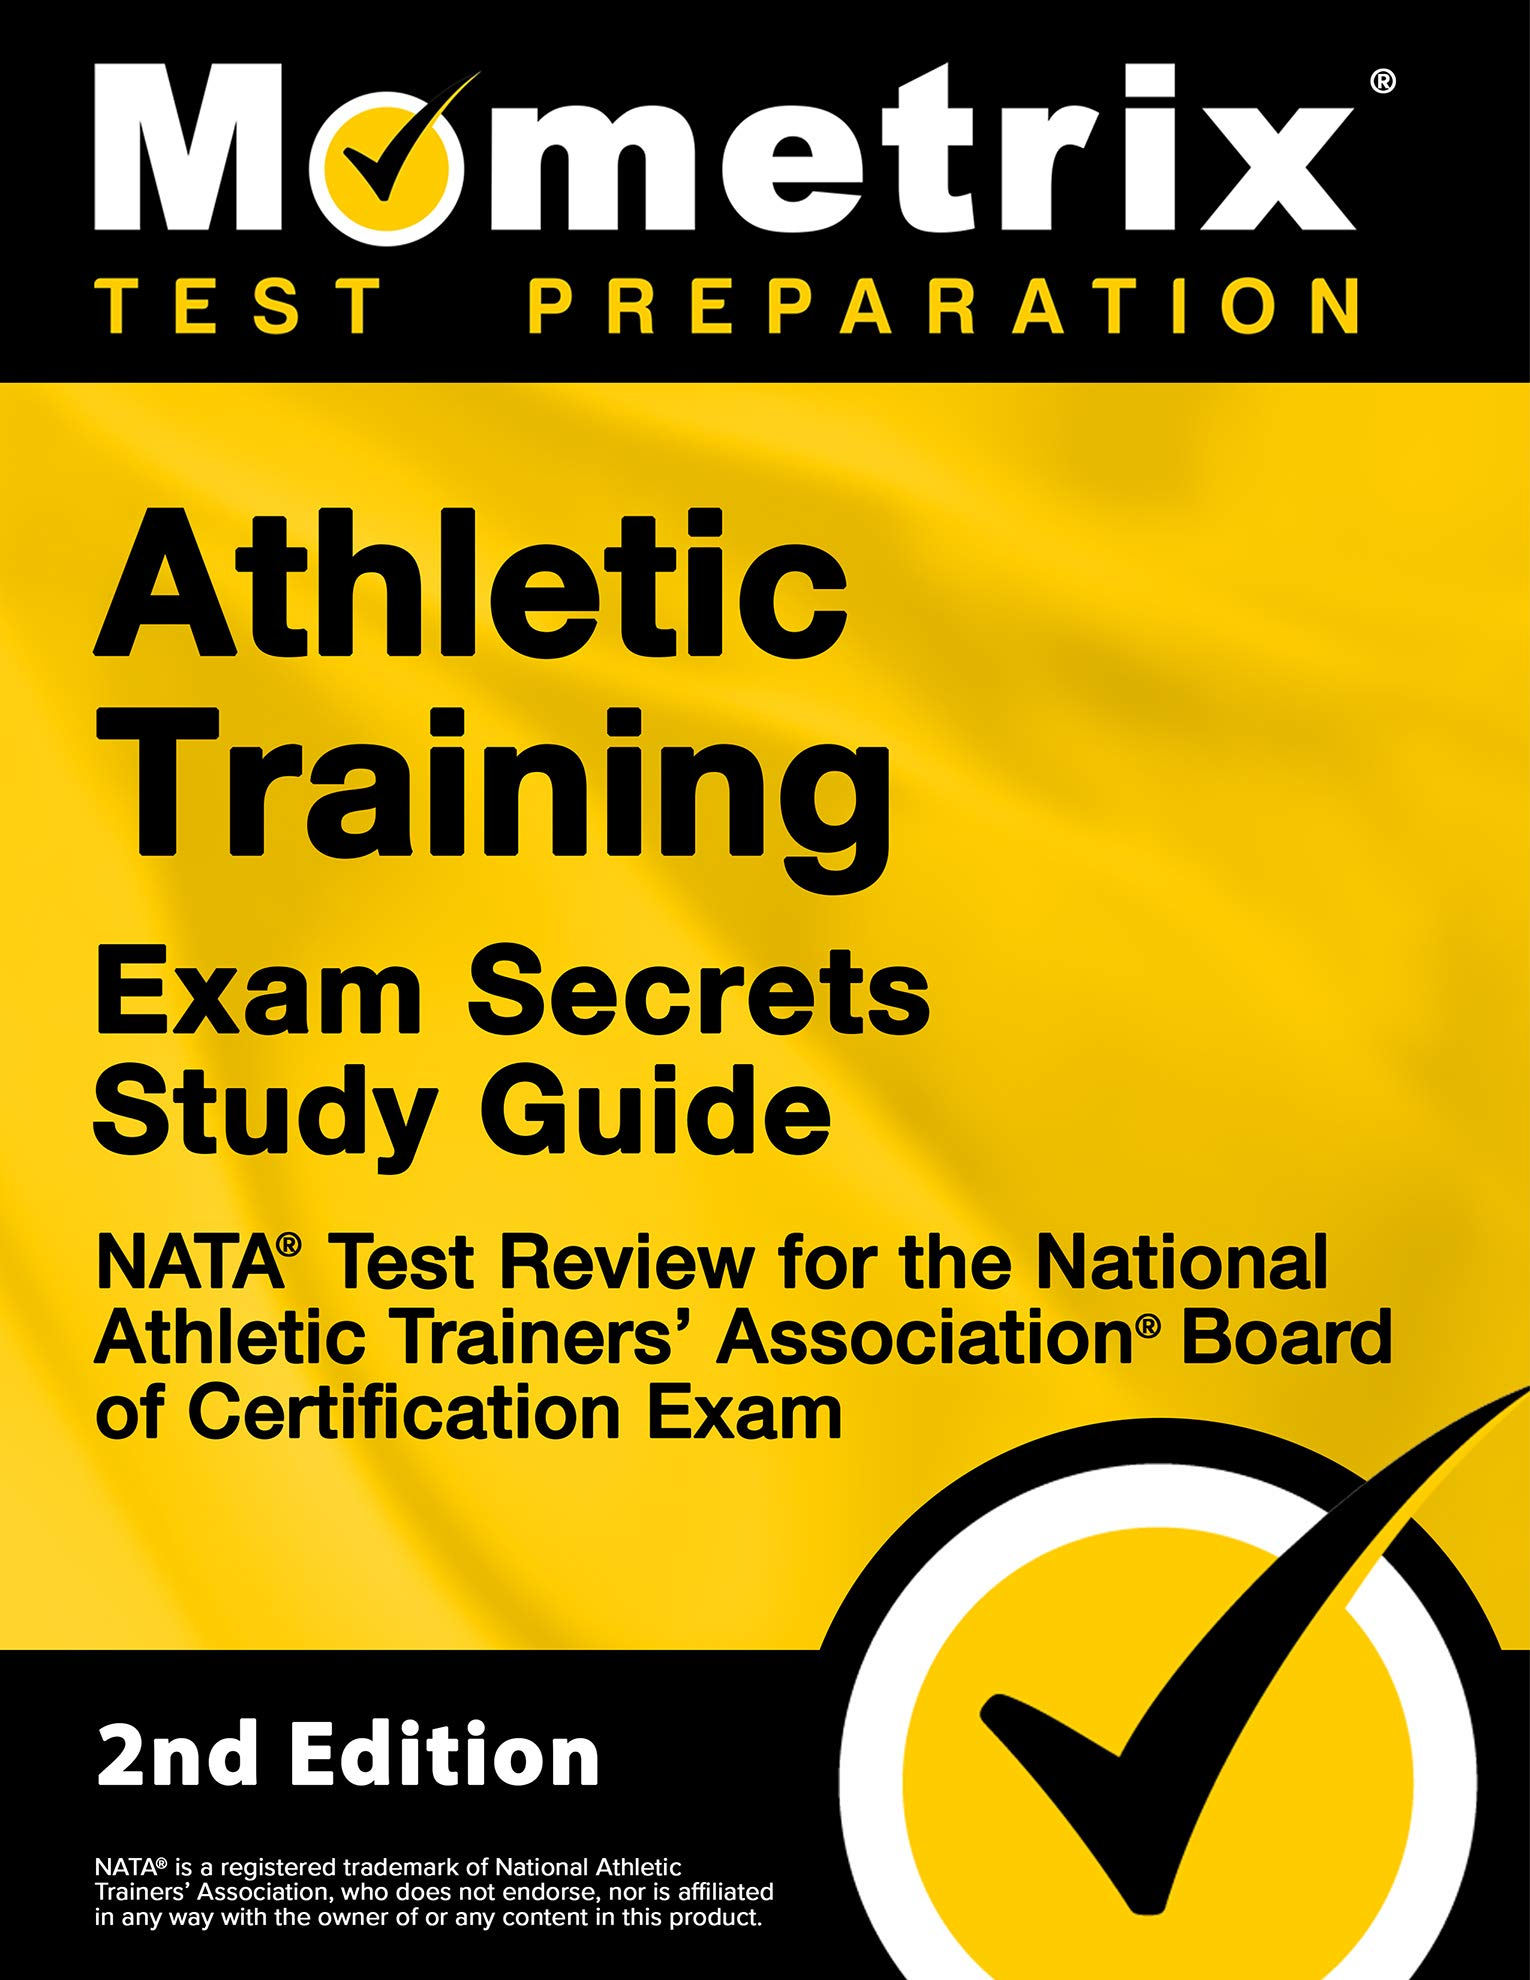 Athletic Training Exam Secrets Study Guide - NATA Test Review for the National Athletic Trainers' Association Board of Certification Exam: [2nd Edition]